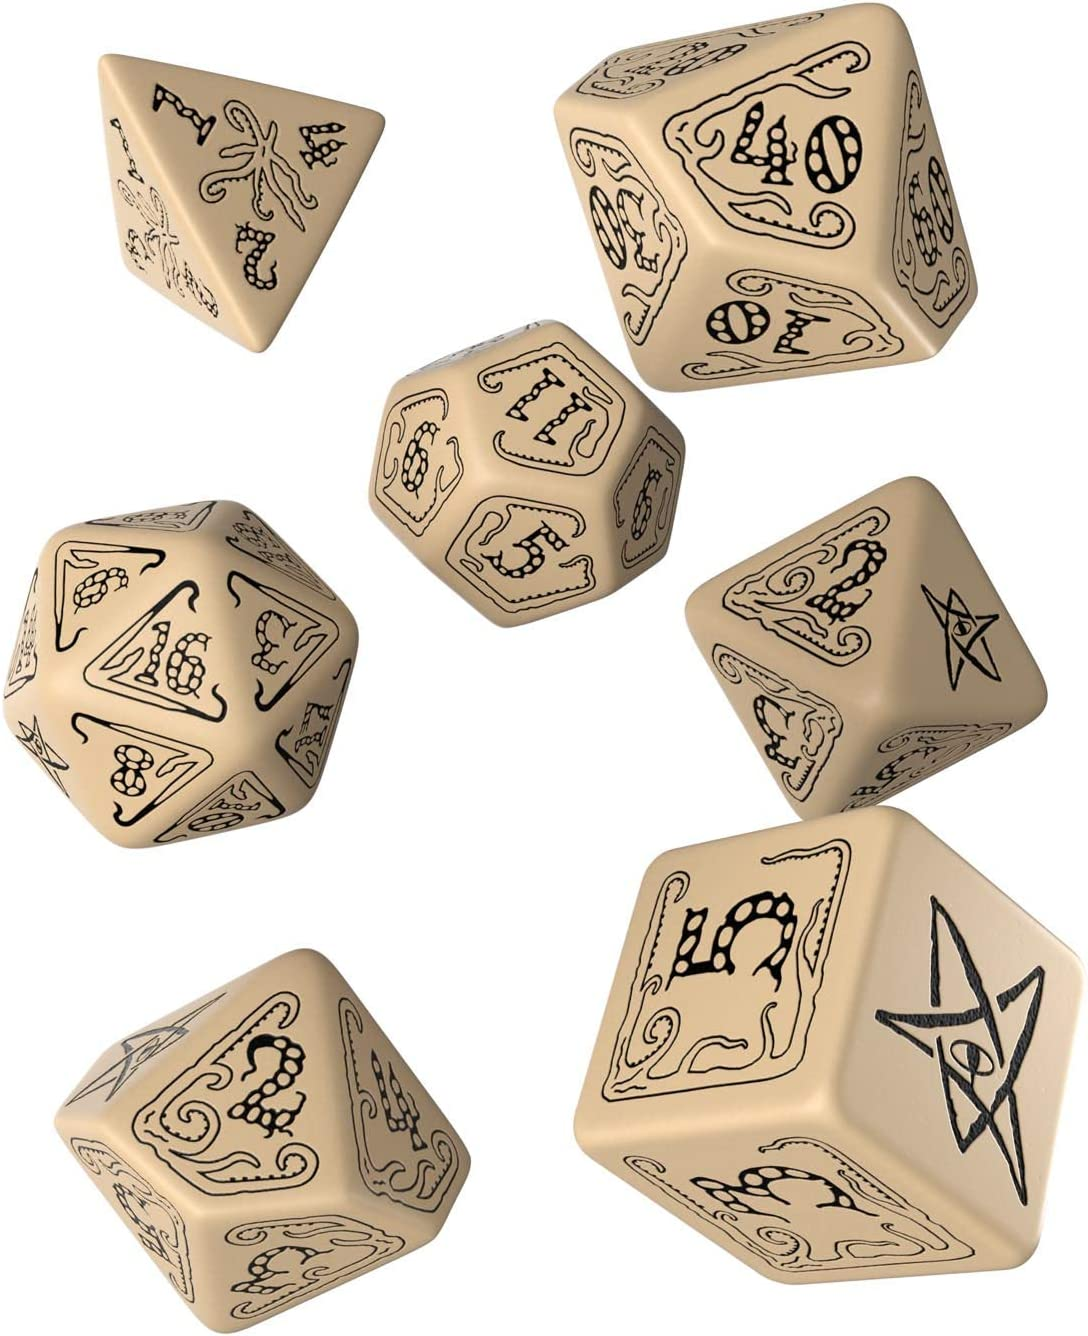 Q Workshop Call of Cthulhu RPG Beige & Black Ornamented Dice Set 7 Polyhedral Pieces: Amazon.es: Juguetes y juegos